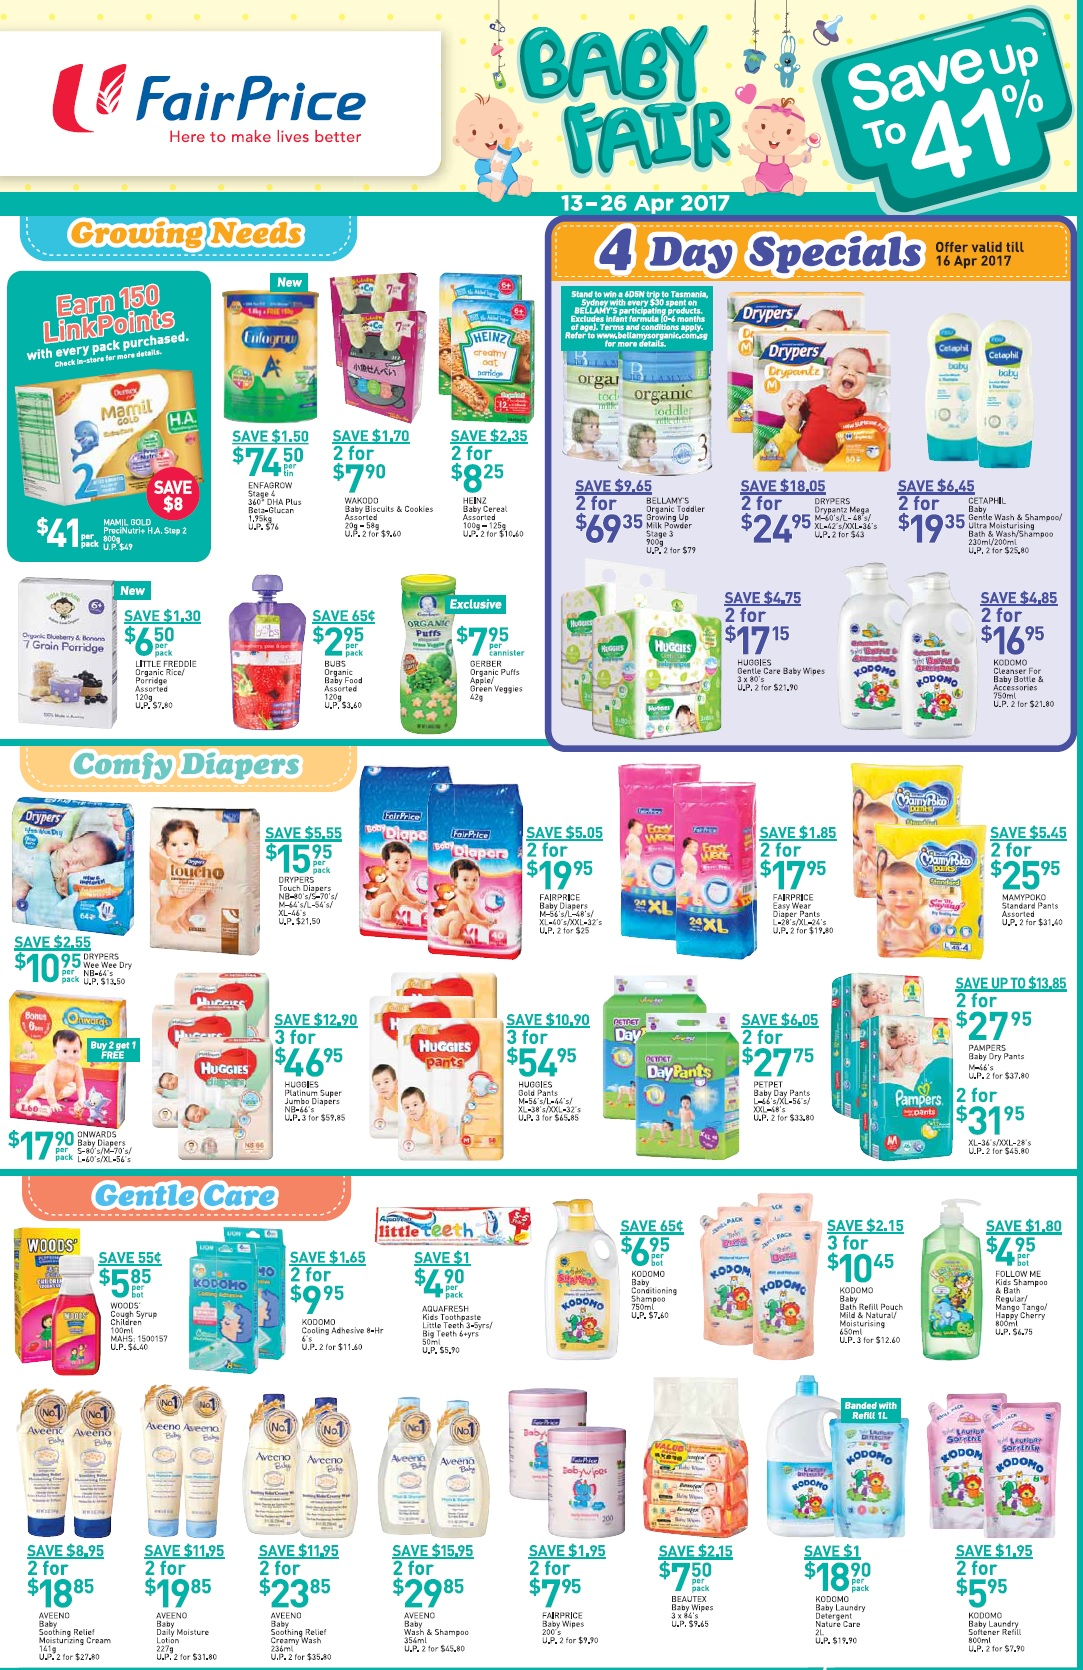 Toys promotion-Baby toys promotion in Singapore,toy car, toy ball, soft toy, building blocks promotion in Singapore